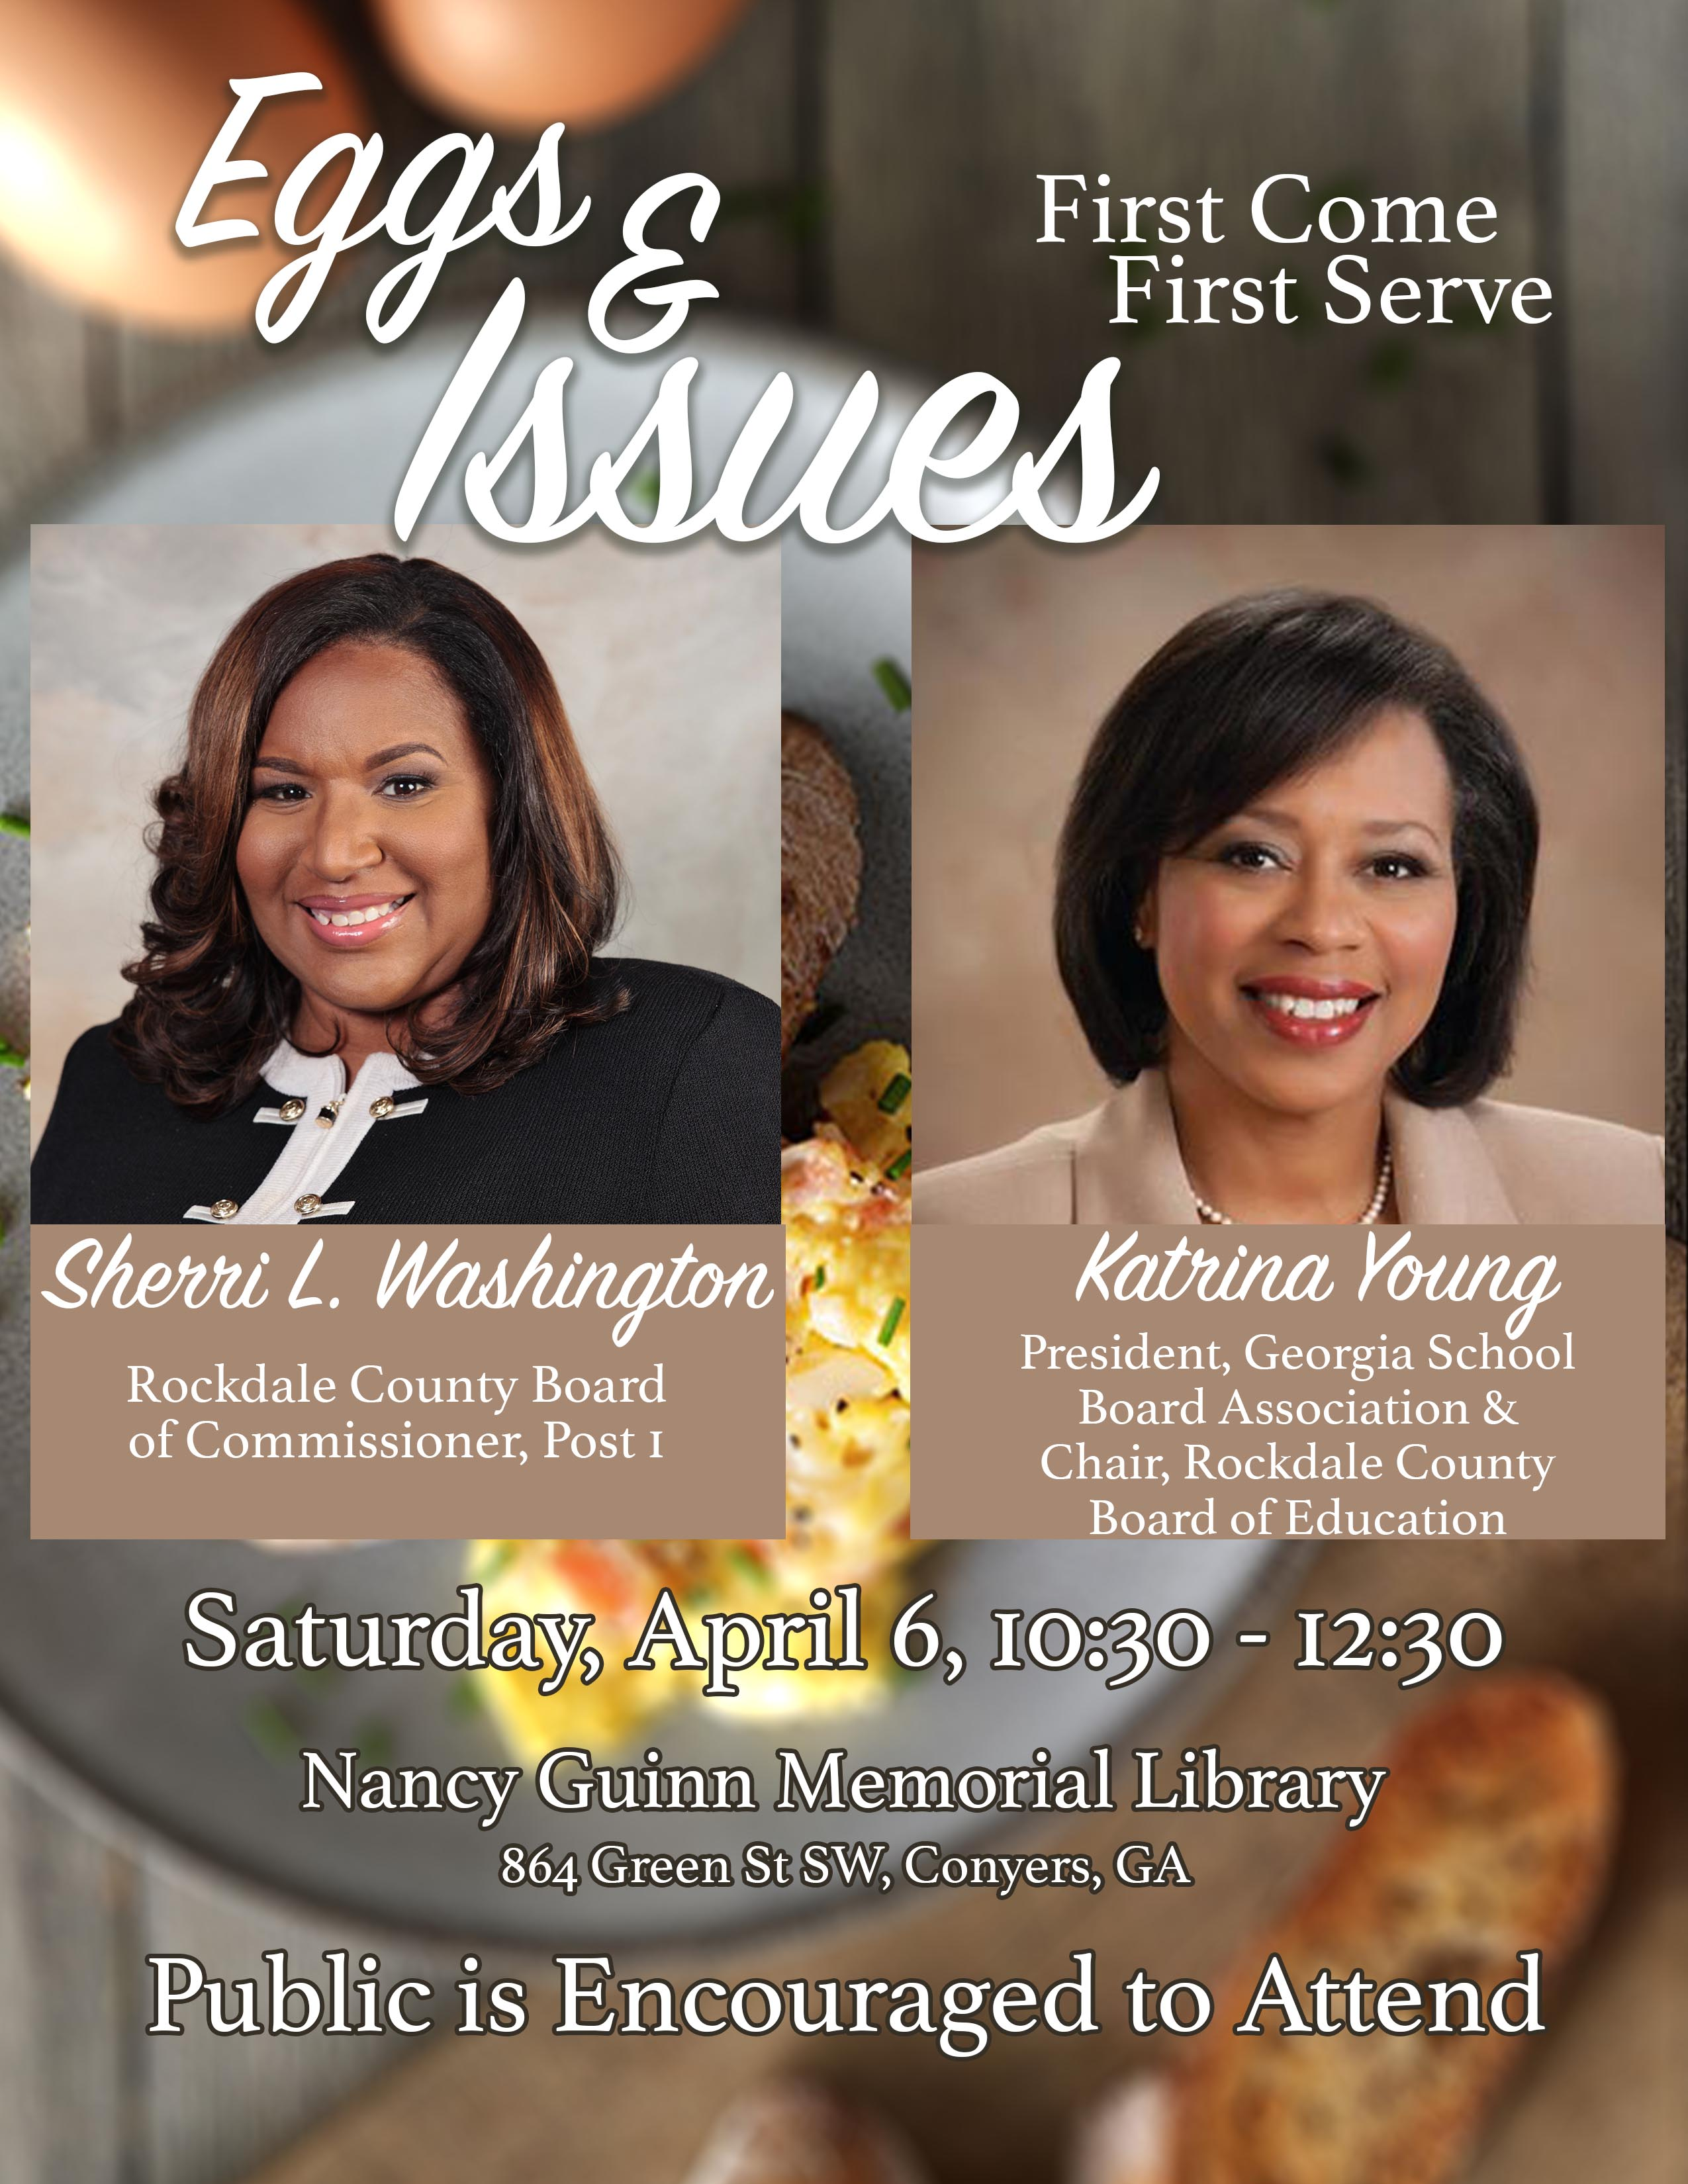 Eggs and Issues Brunch @ Nancy Guinn Memorial Library